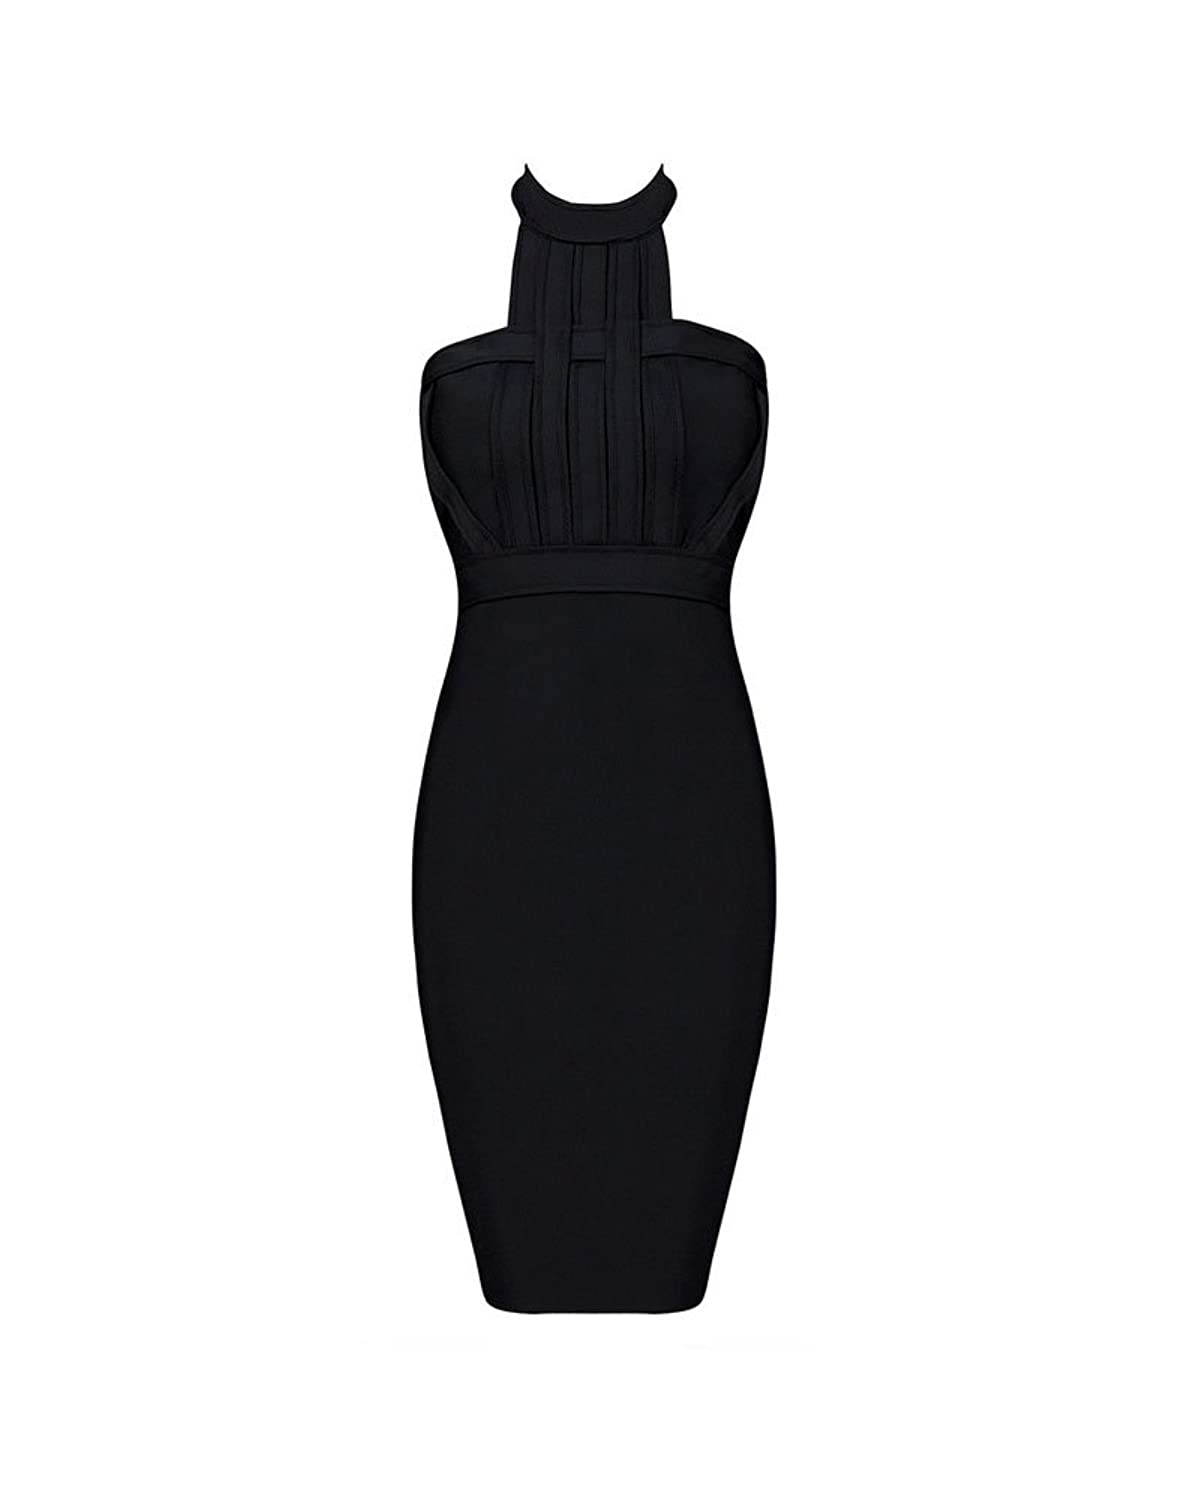 Whoinshop Women's Prom Halter Dress Ladies Sexy Backless Party Dress